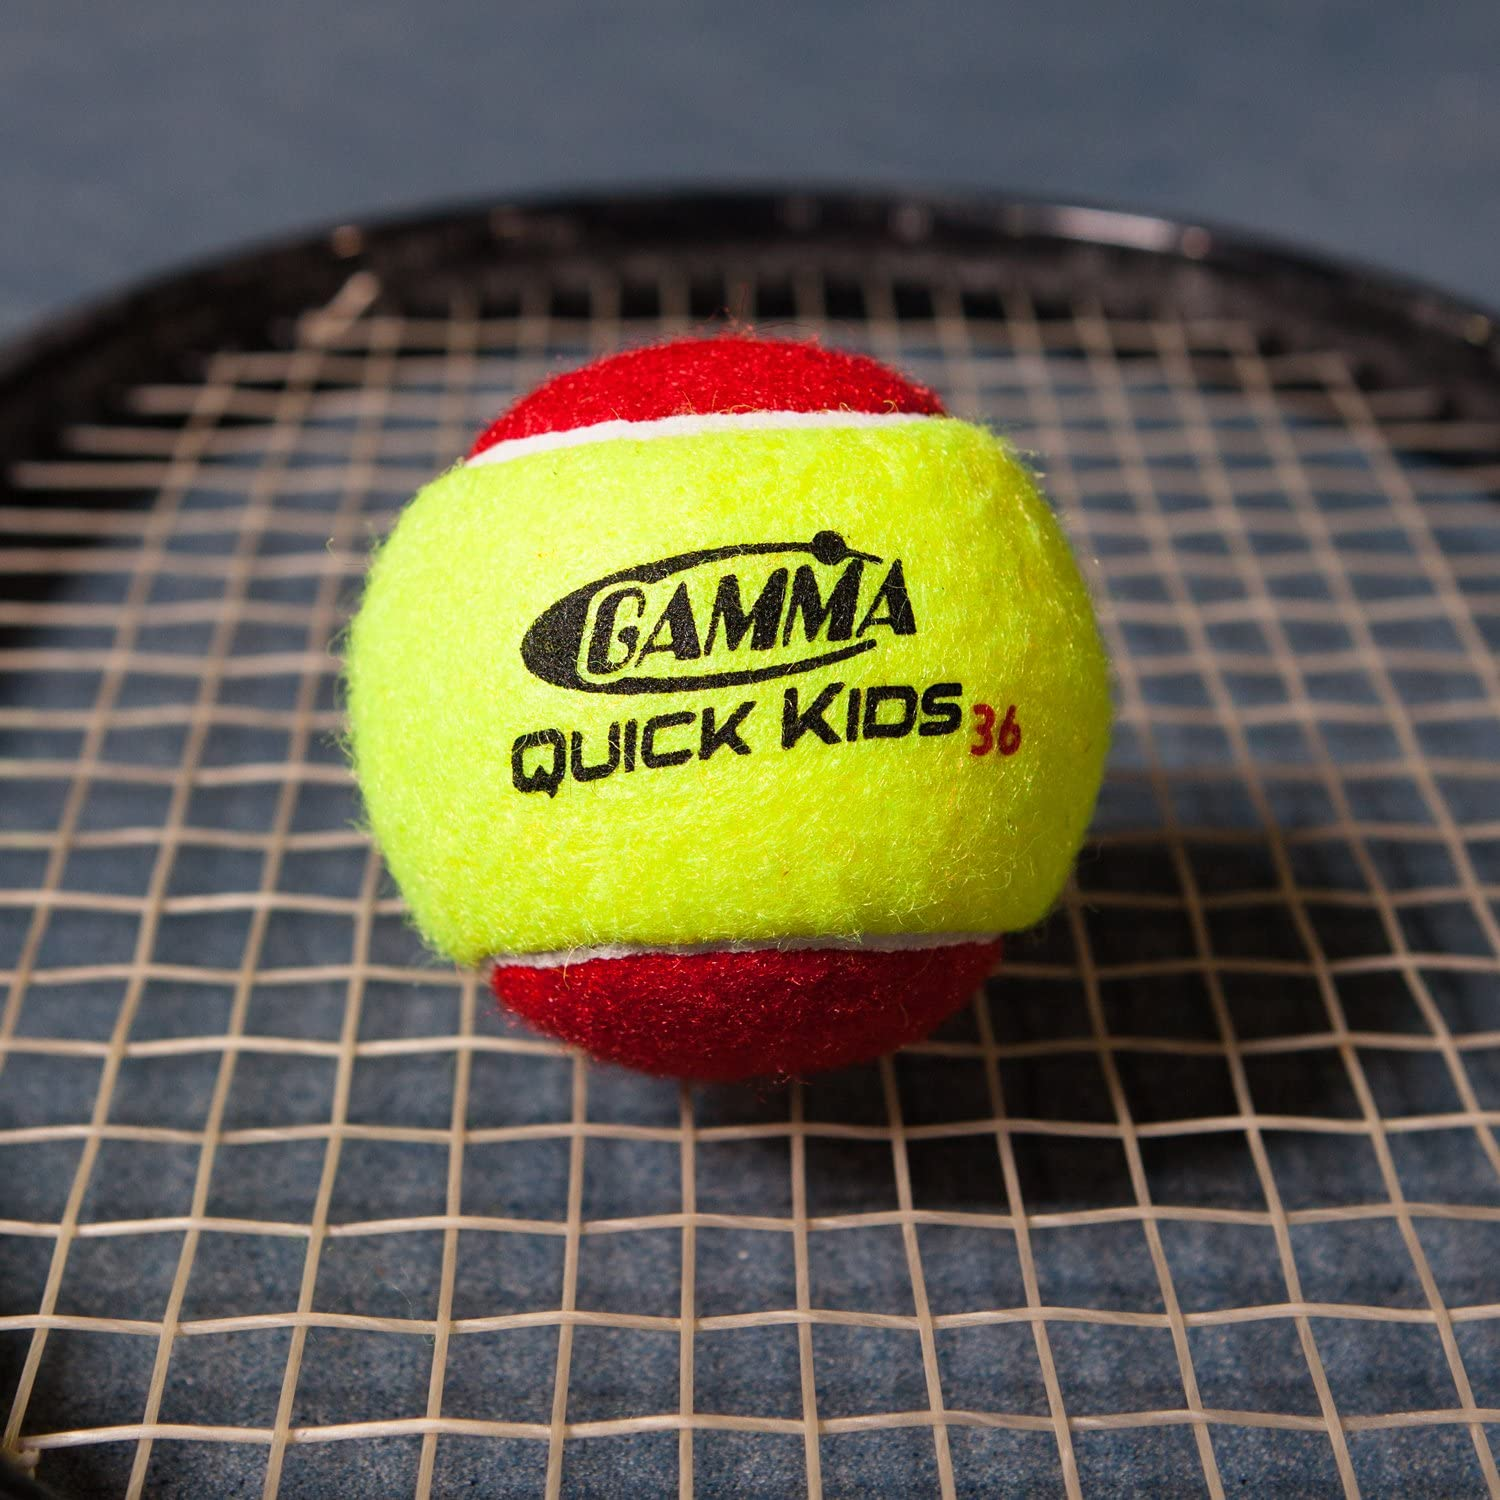 Gamma Beginner Child or Adult Training (Transition) Practice Tennis Balls: Orange or Green Dot, Quick Kids 36, 60, or 78 (25%-50% Slower Ball Speed) - ...